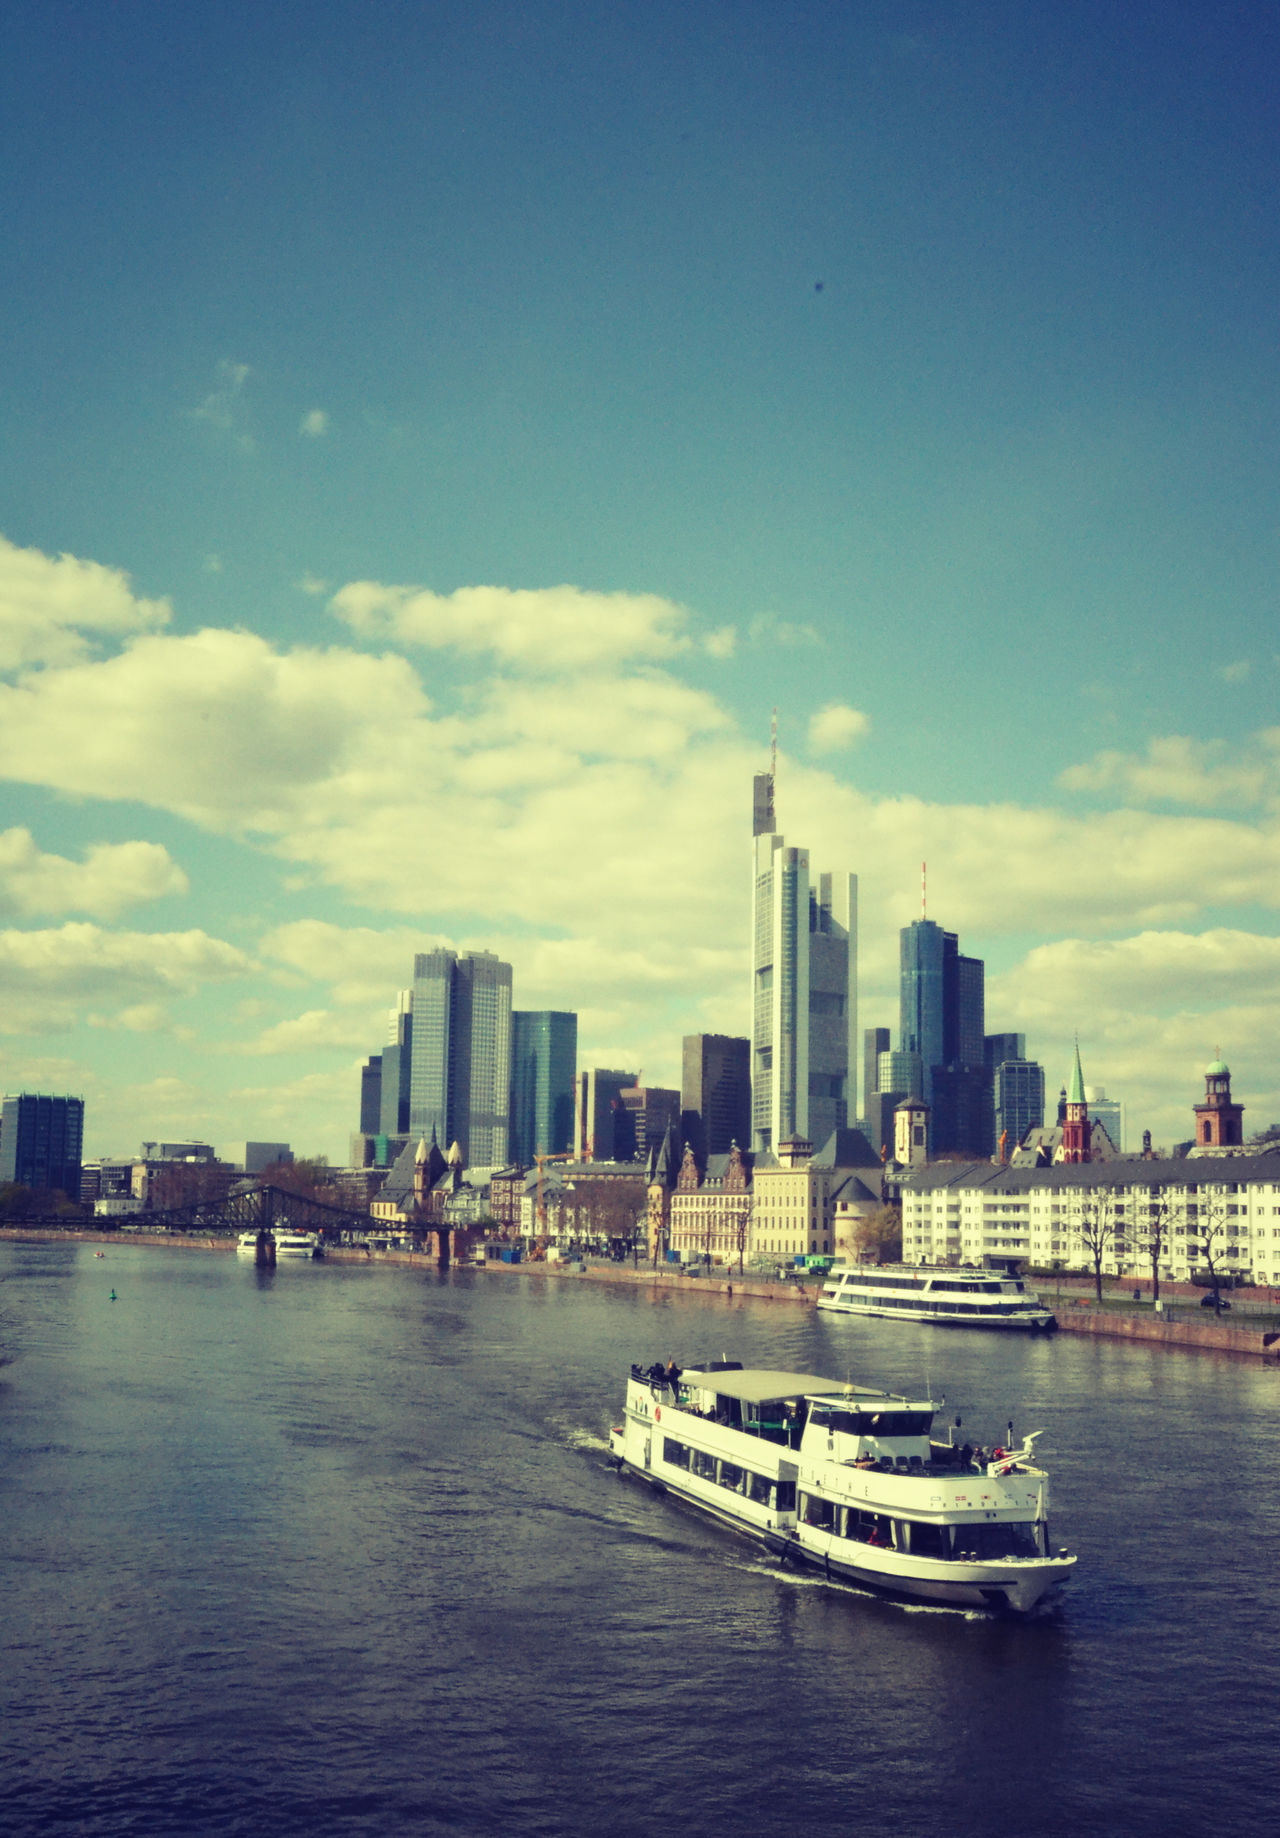 Architecture Built Structure City Cityscape Cloud Day Frankfurt Am Main Germany Main Mainhattan Mode Of Transport Modern No People Outdoors Retrostyle River Sky Sky And Clouds Skyline Skyscraper Tourboat Transportation Urban Skyline Water